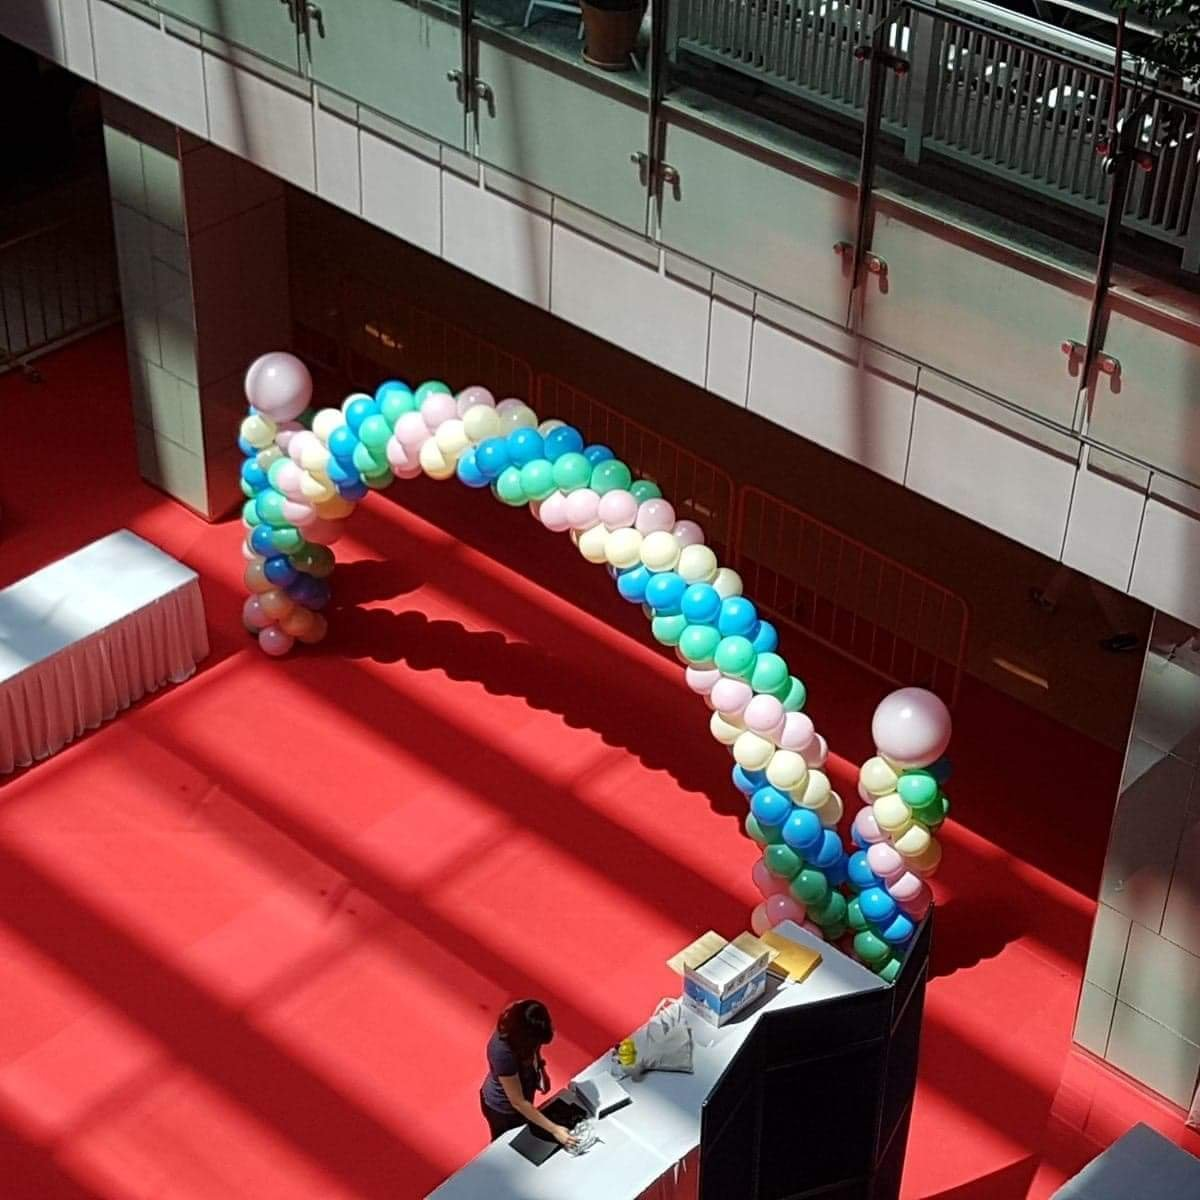 , Balloon Arch for shopping mall event!, Singapore Balloon Decoration Services - Balloon Workshop and Balloon Sculpting